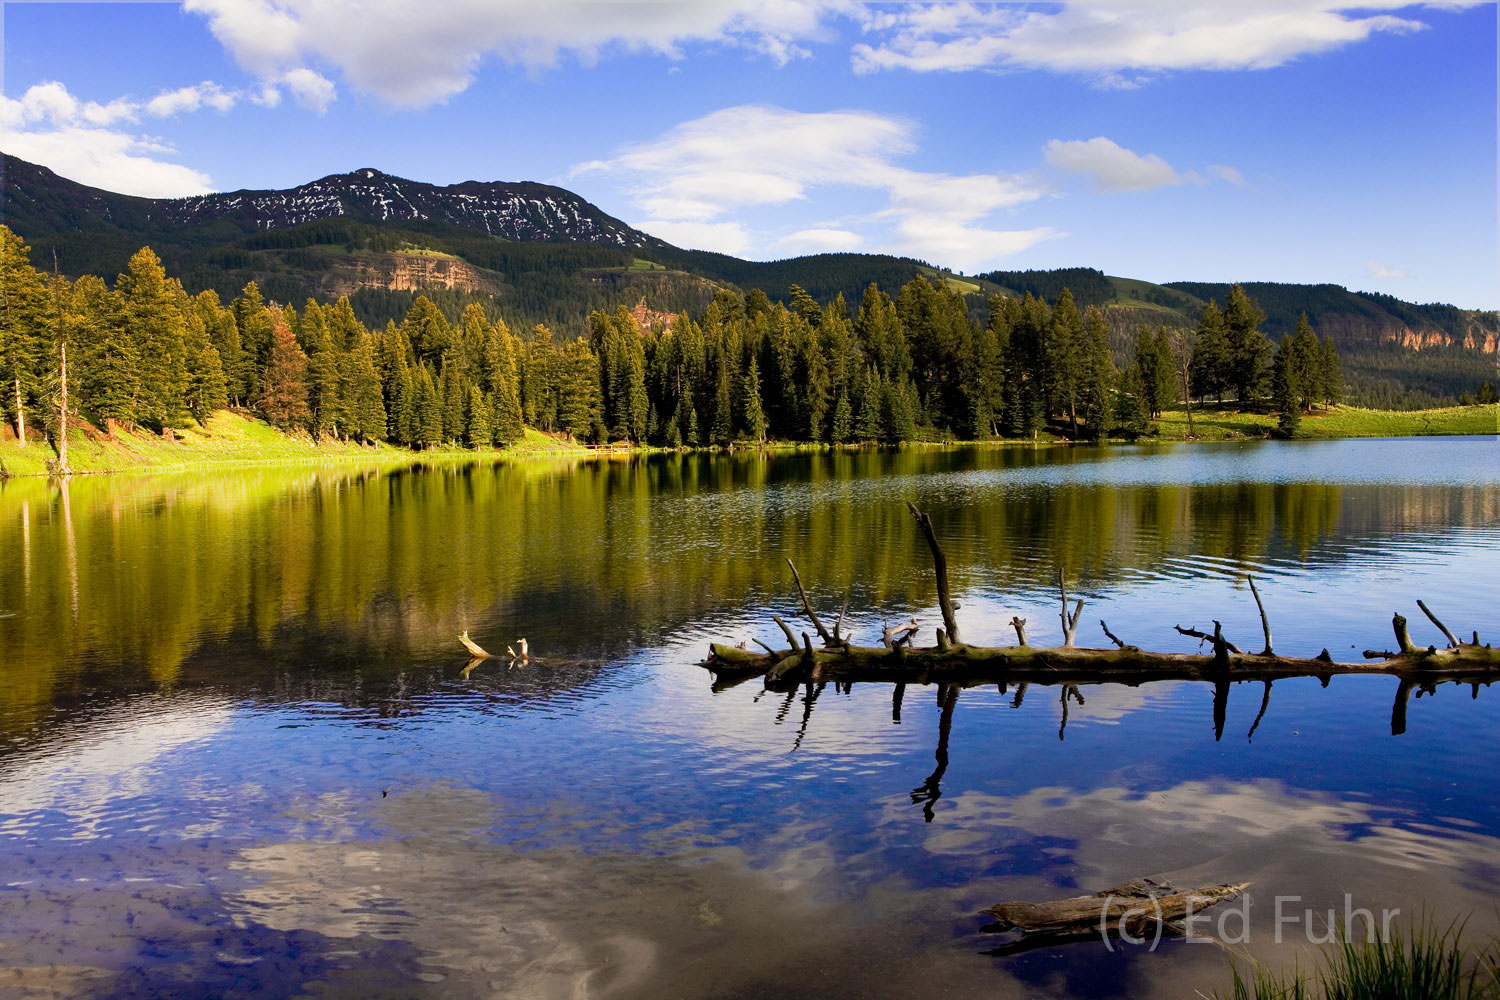 Shortly before sunset idyllic Trout Lake reflects its surrounding hillsides and bright blue sky.  In the early morning a coyote...